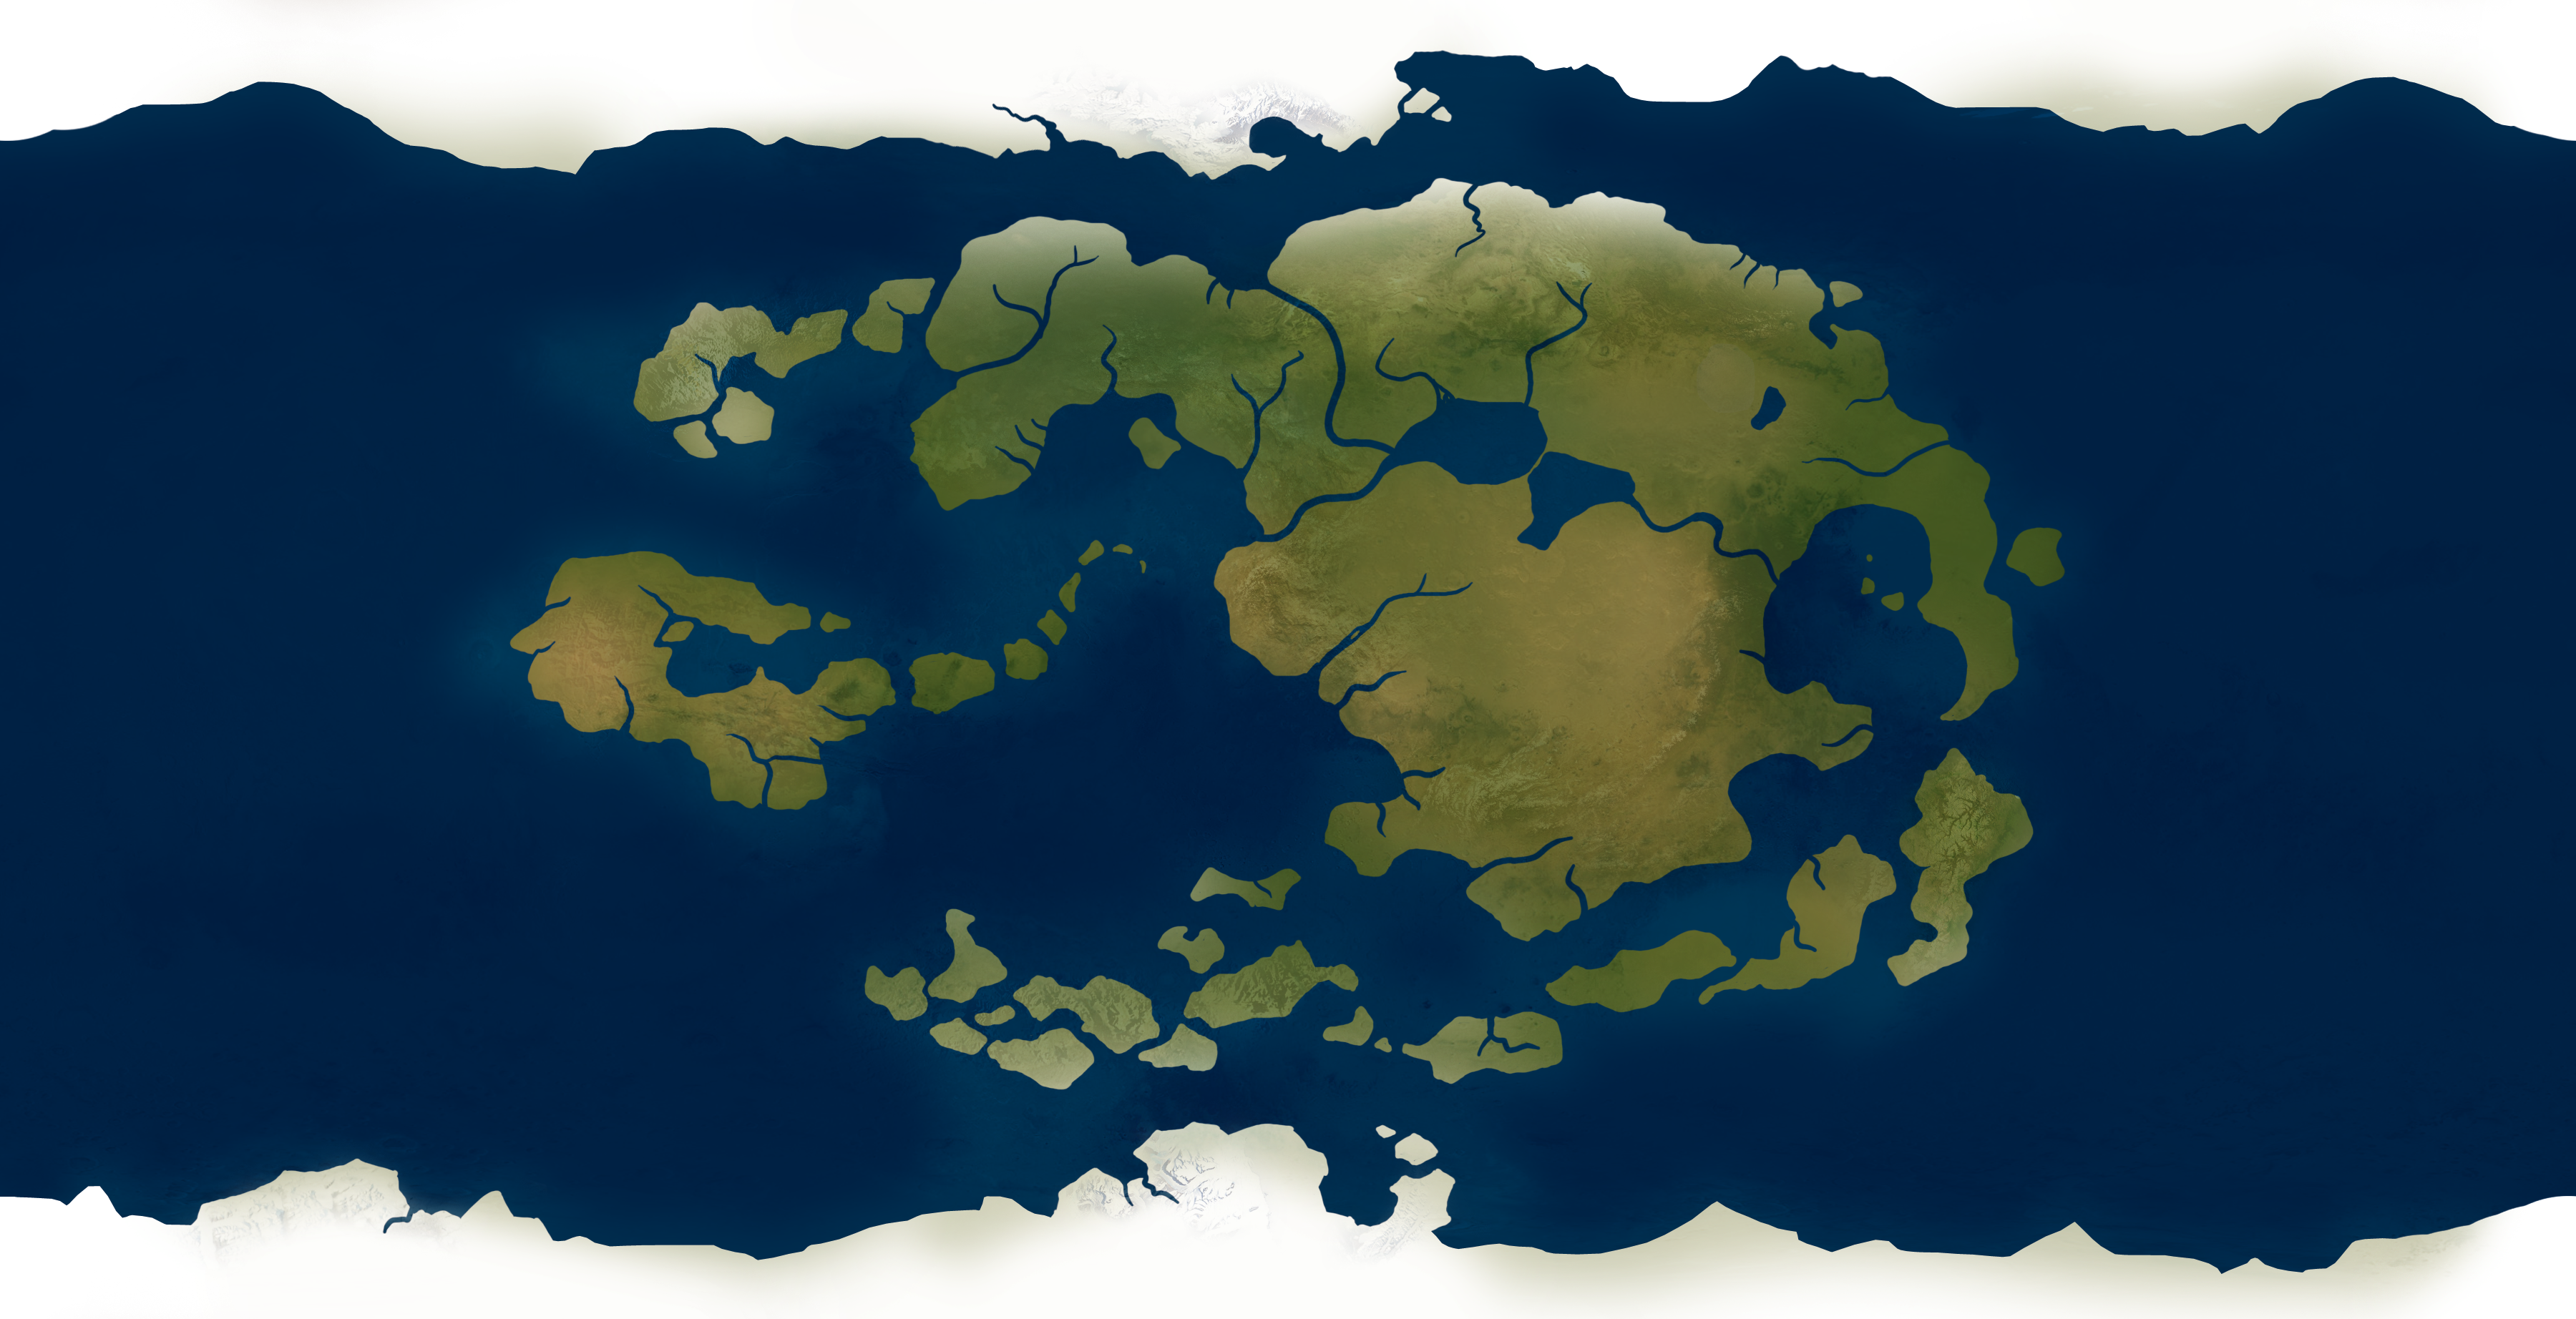 Requests are closed the world of avatar full size map 3600x1844 full size map gumiabroncs Choice Image